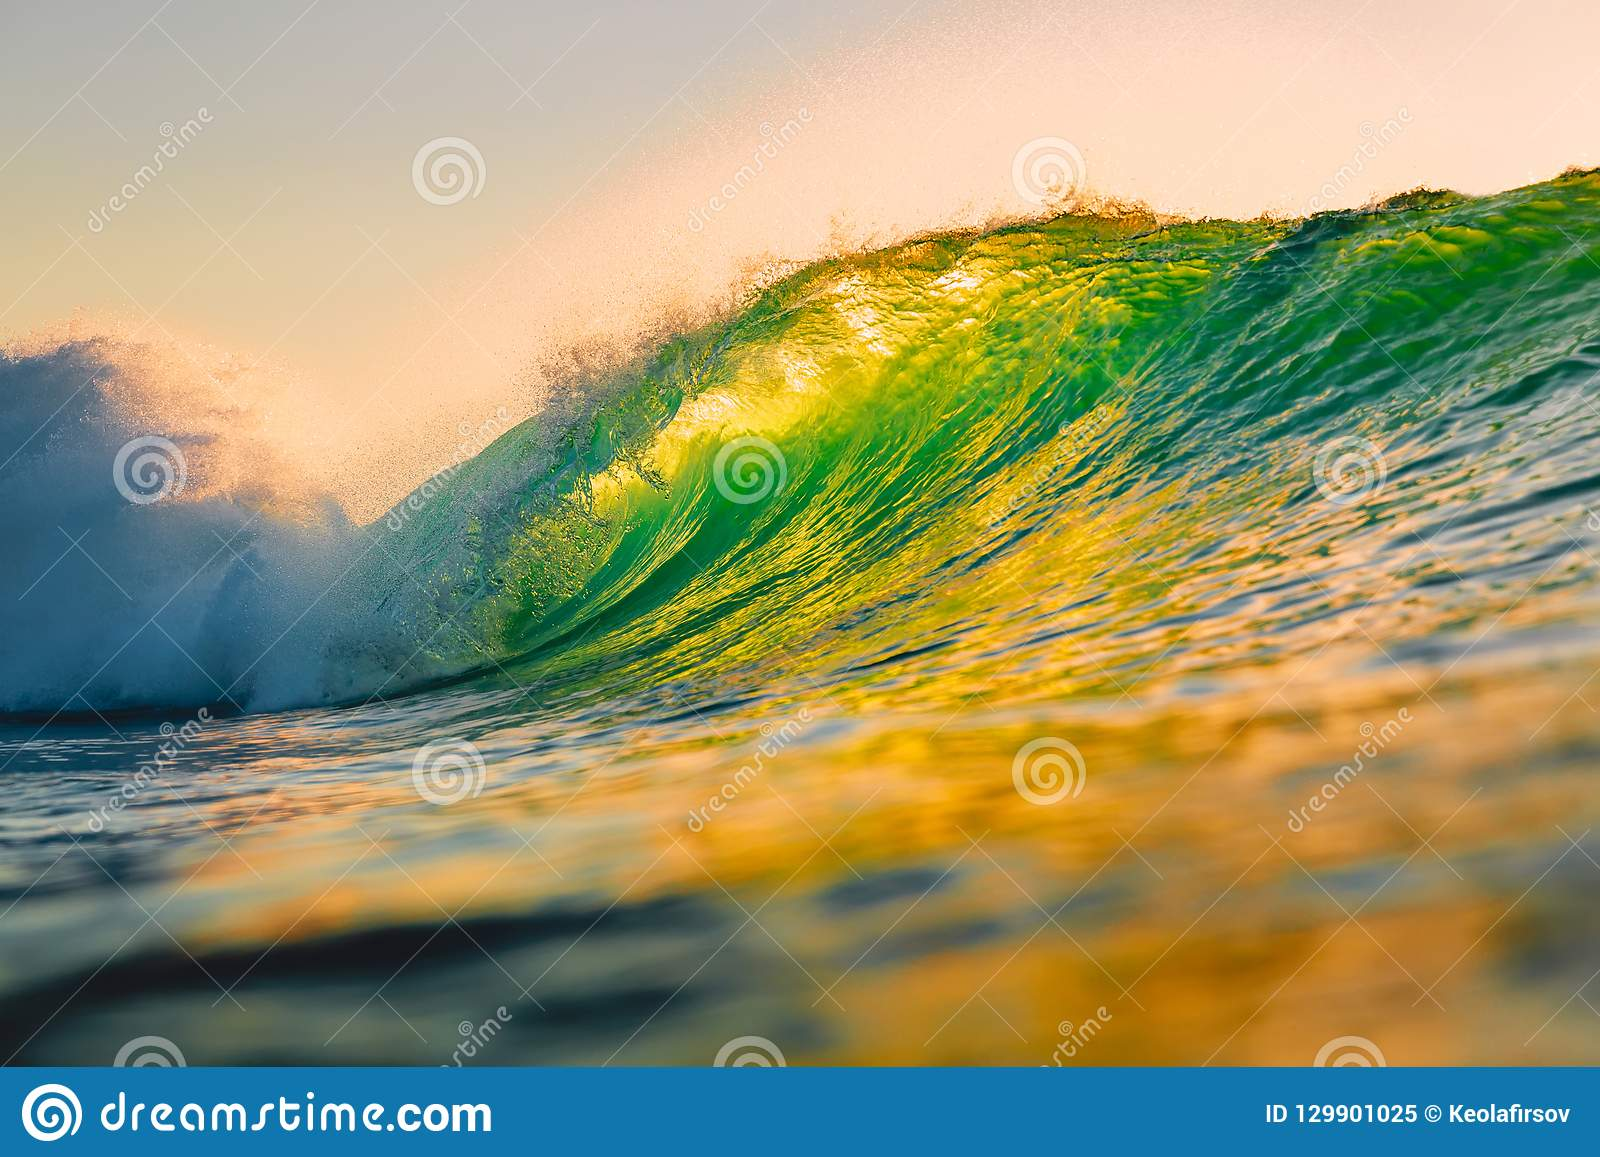 Ocean barrel wave at sunset. Perfect wave for surfing in Hawaii